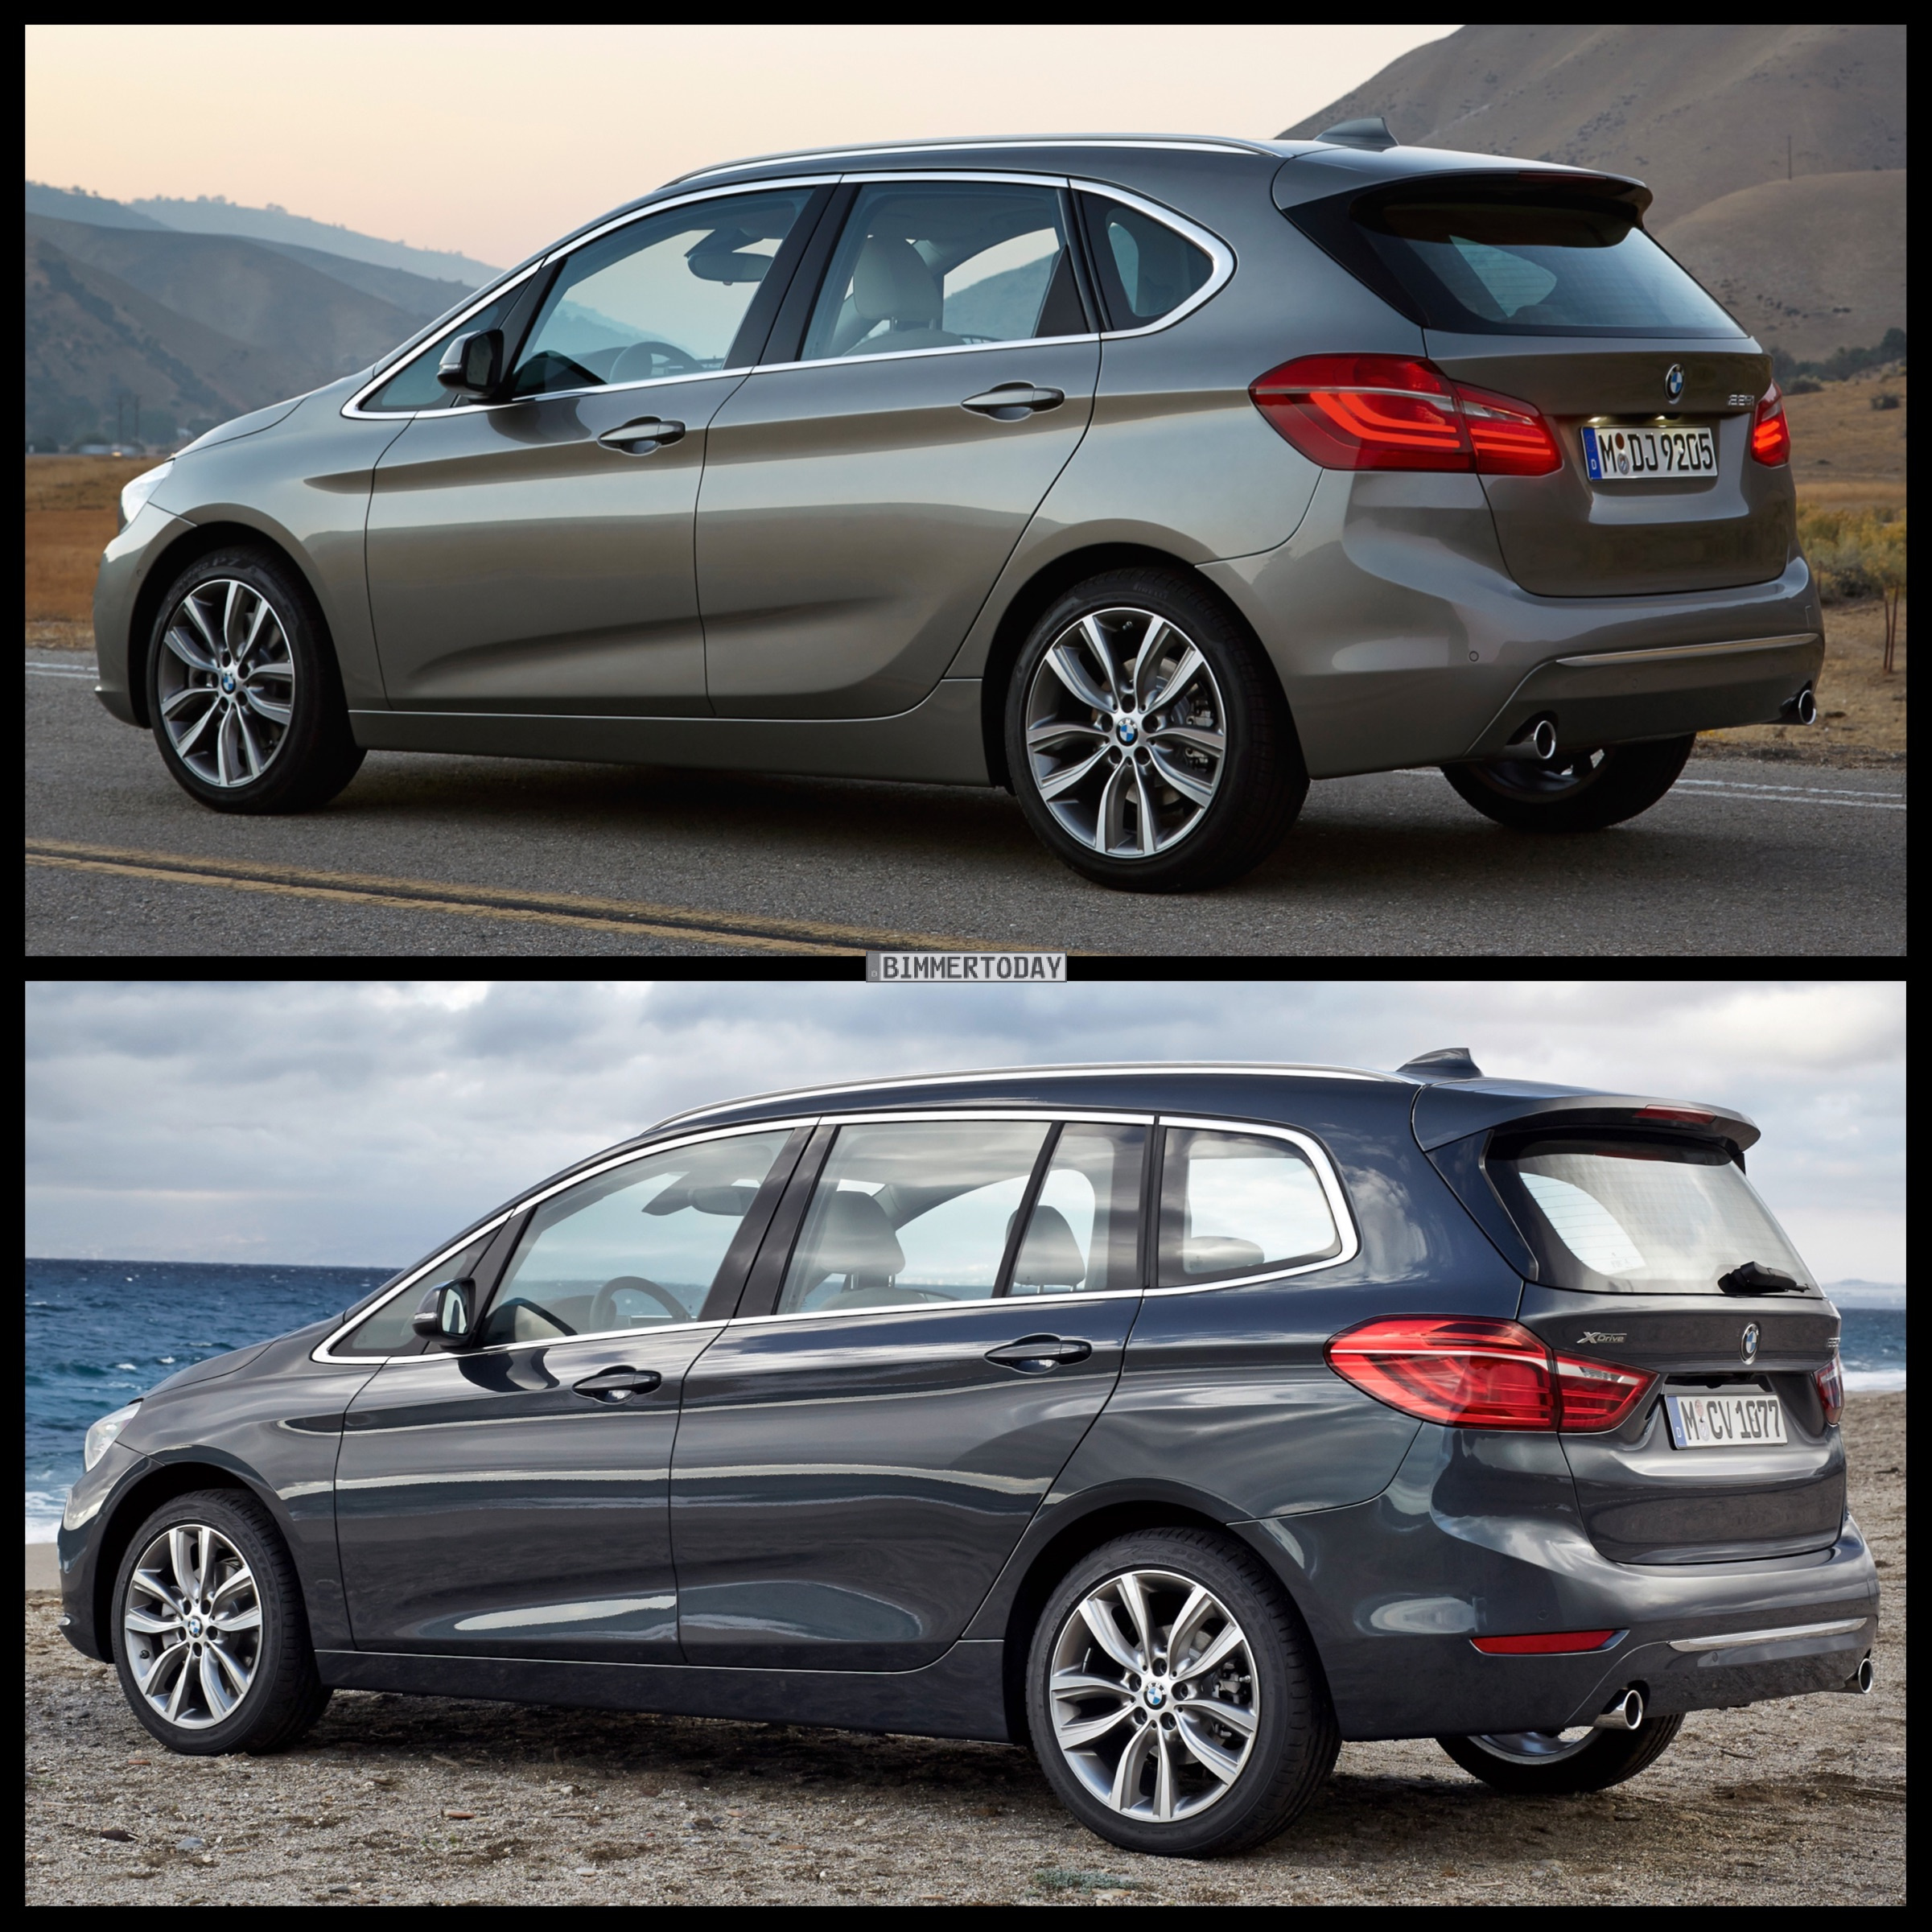 Bmw 2 Series Gran Tourer Vs Bmw 2 Series Active Tourer Photo